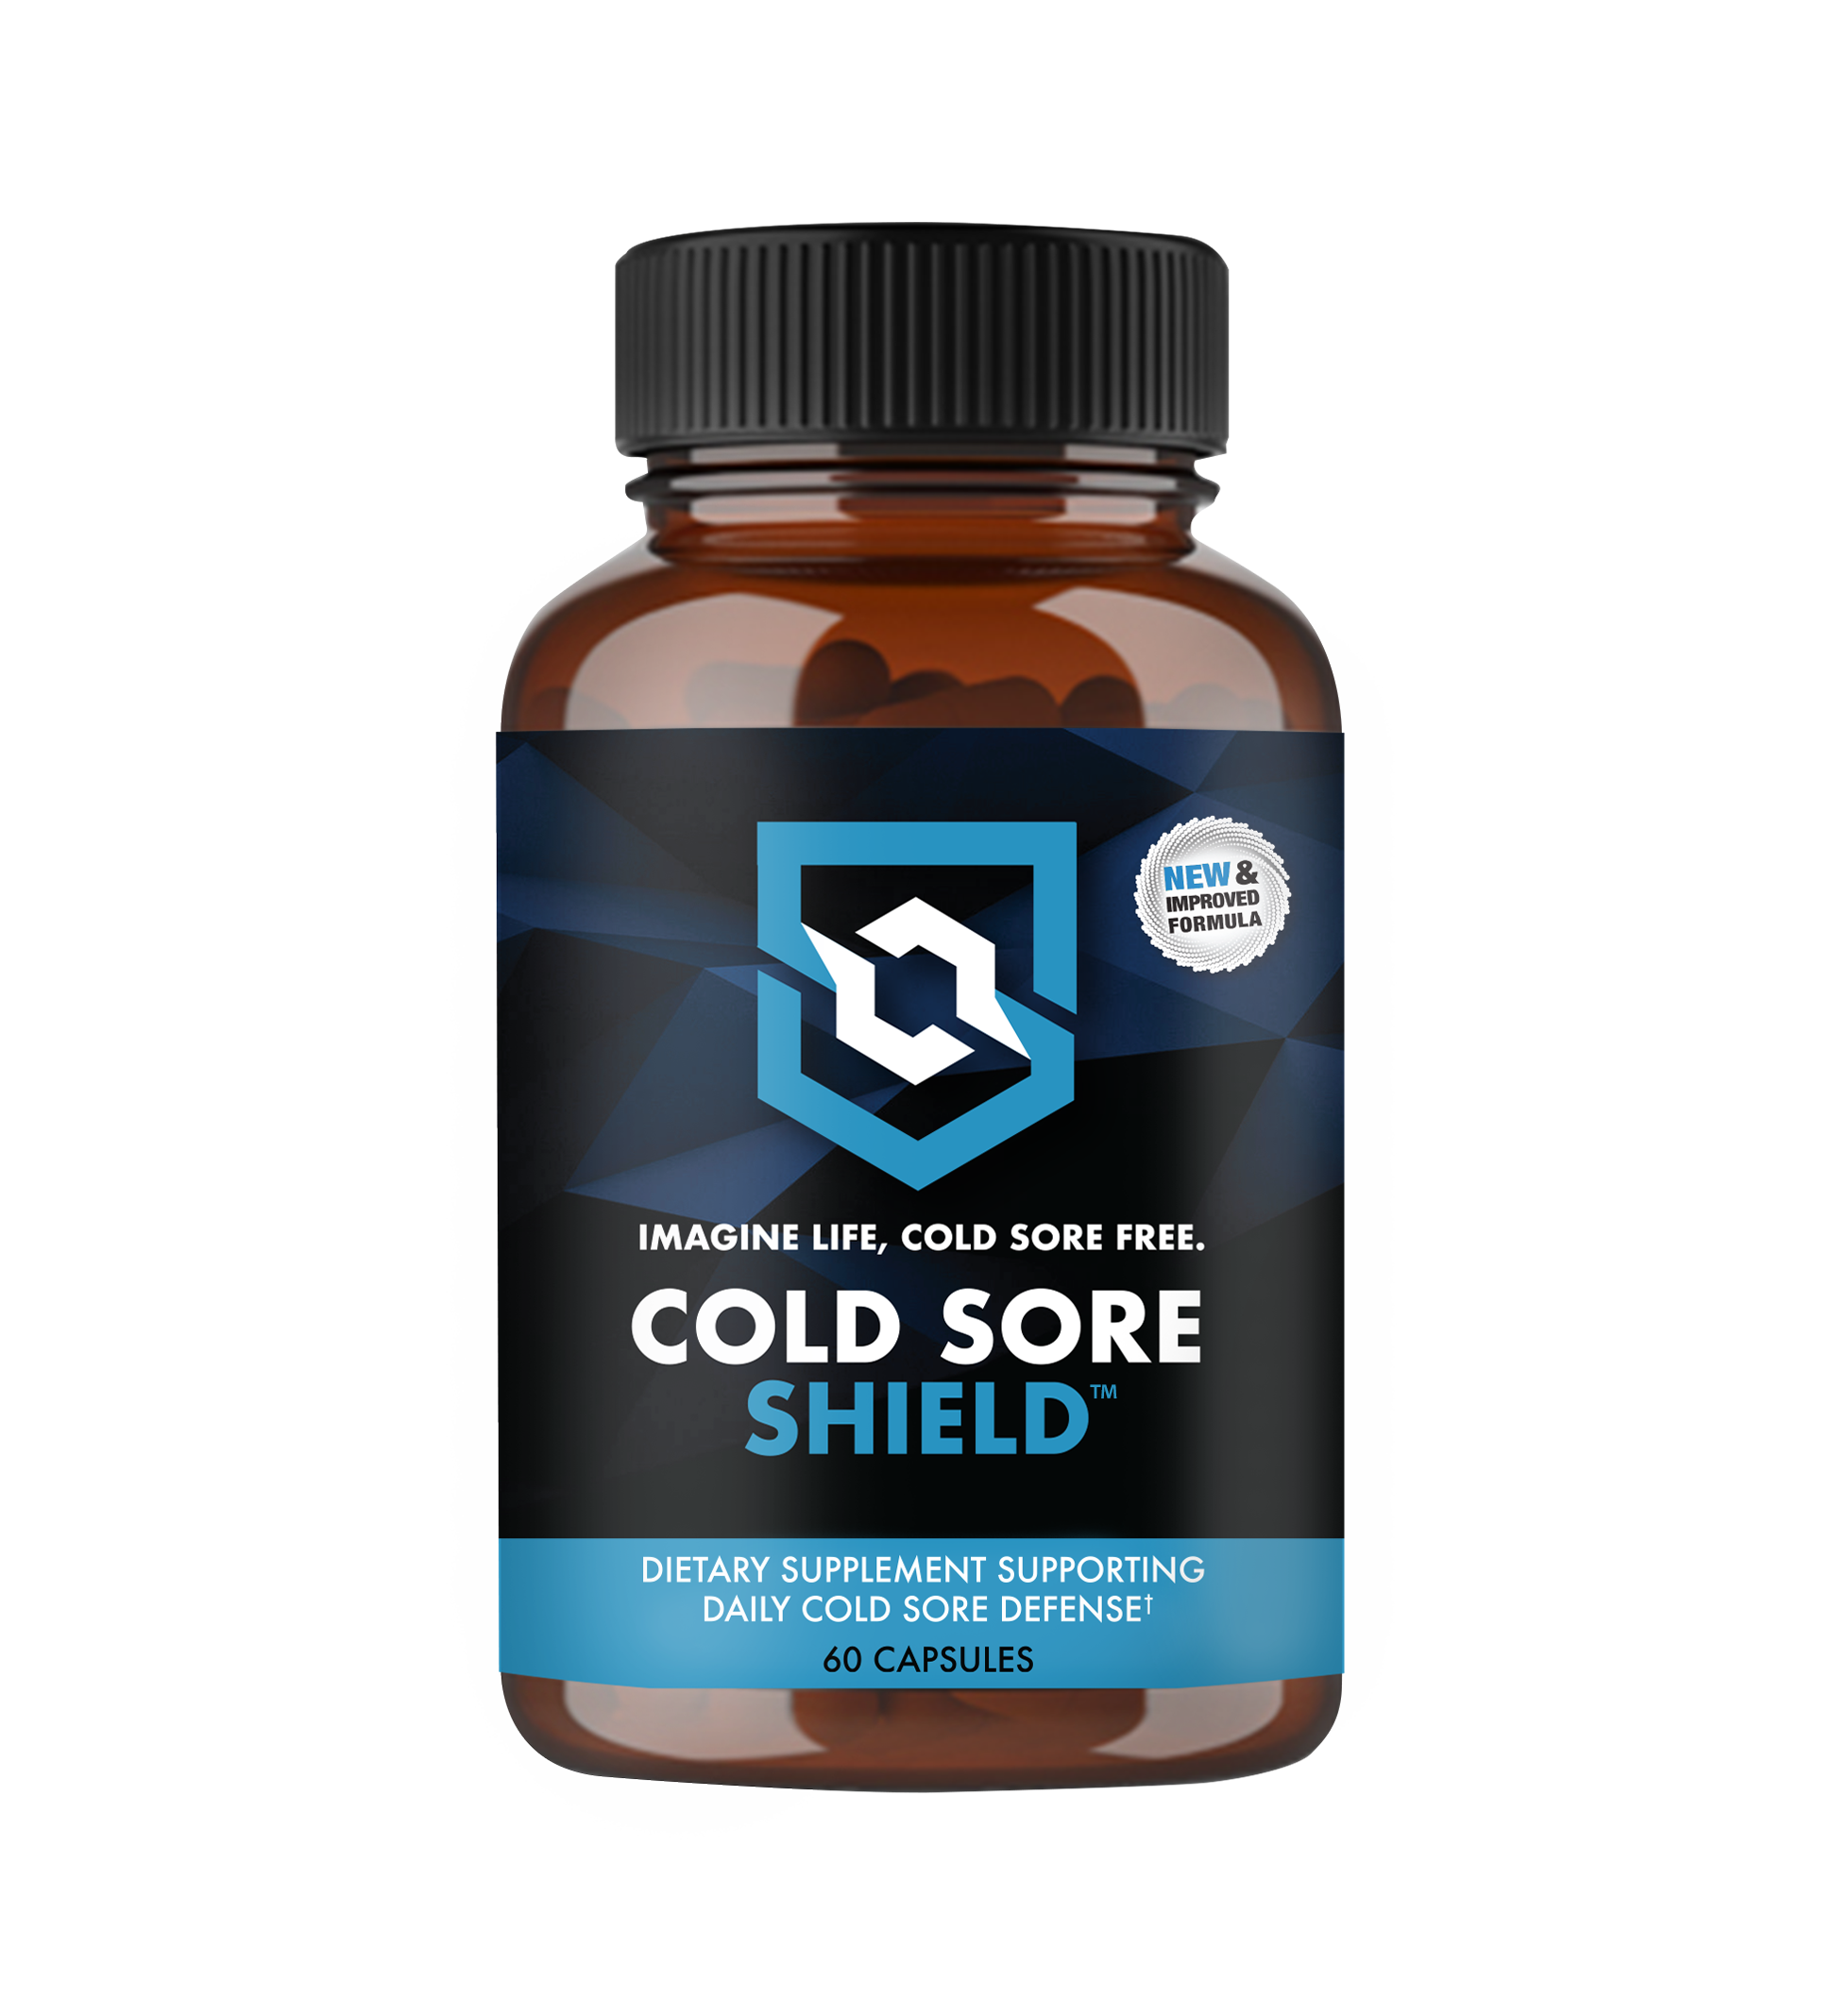 Cold Sore Shield